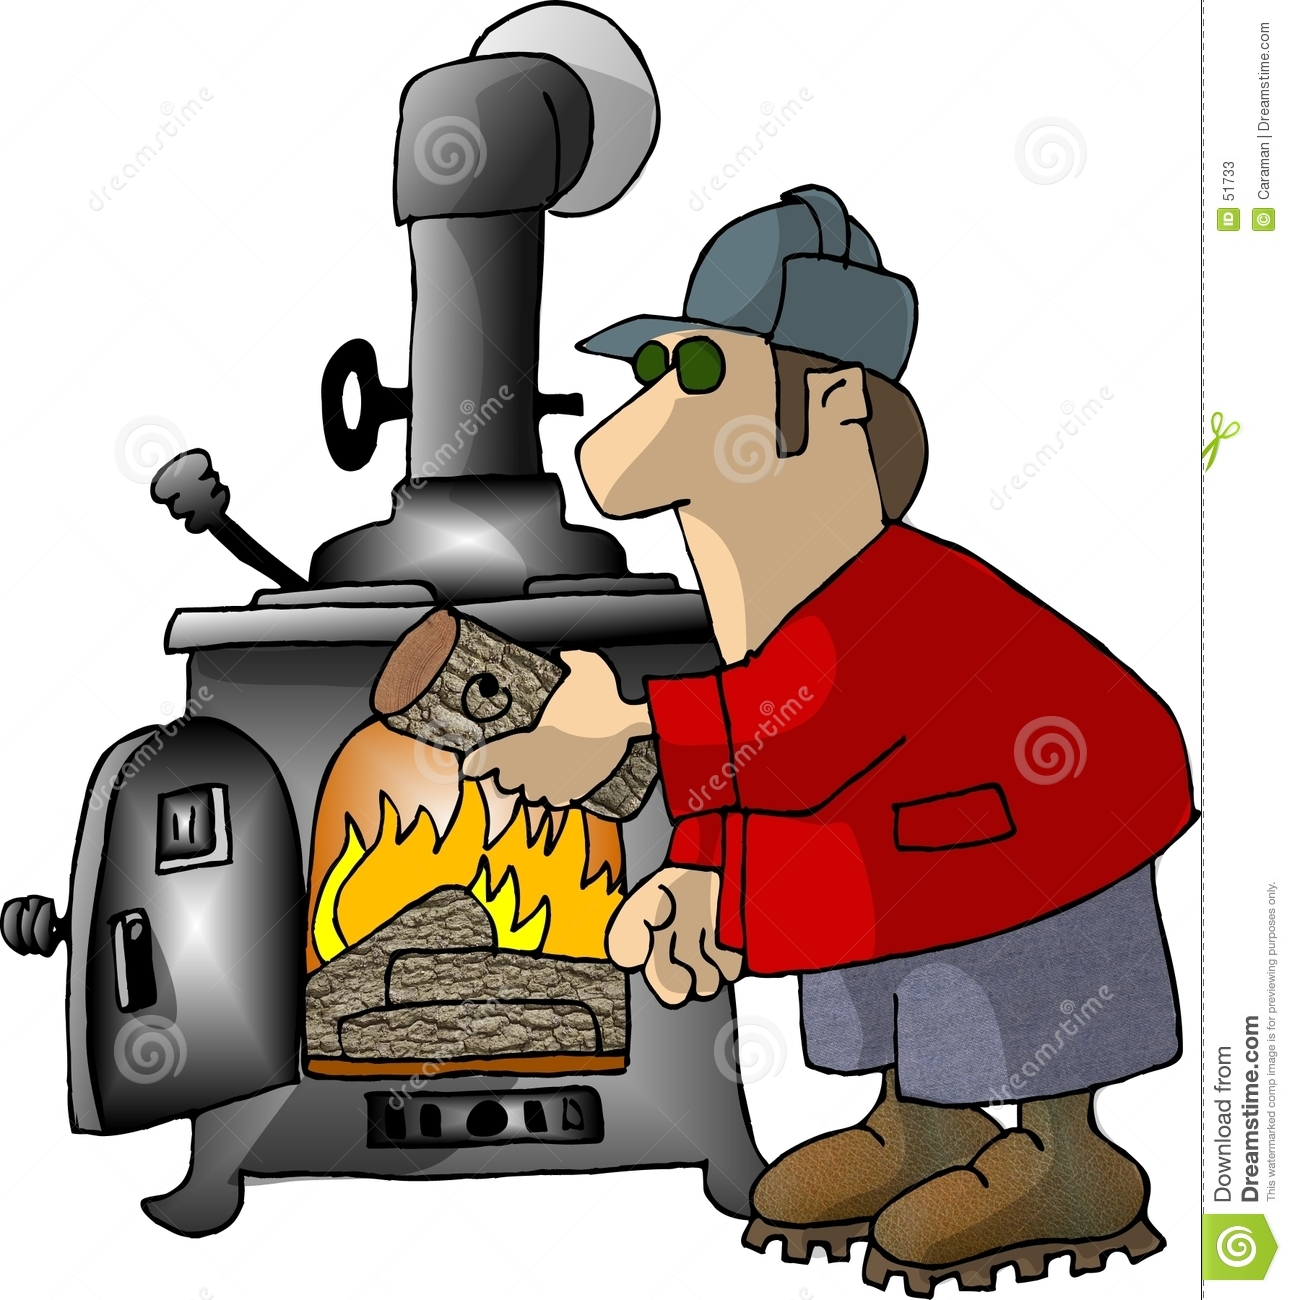 Wood Stove Furnace Clip Art.